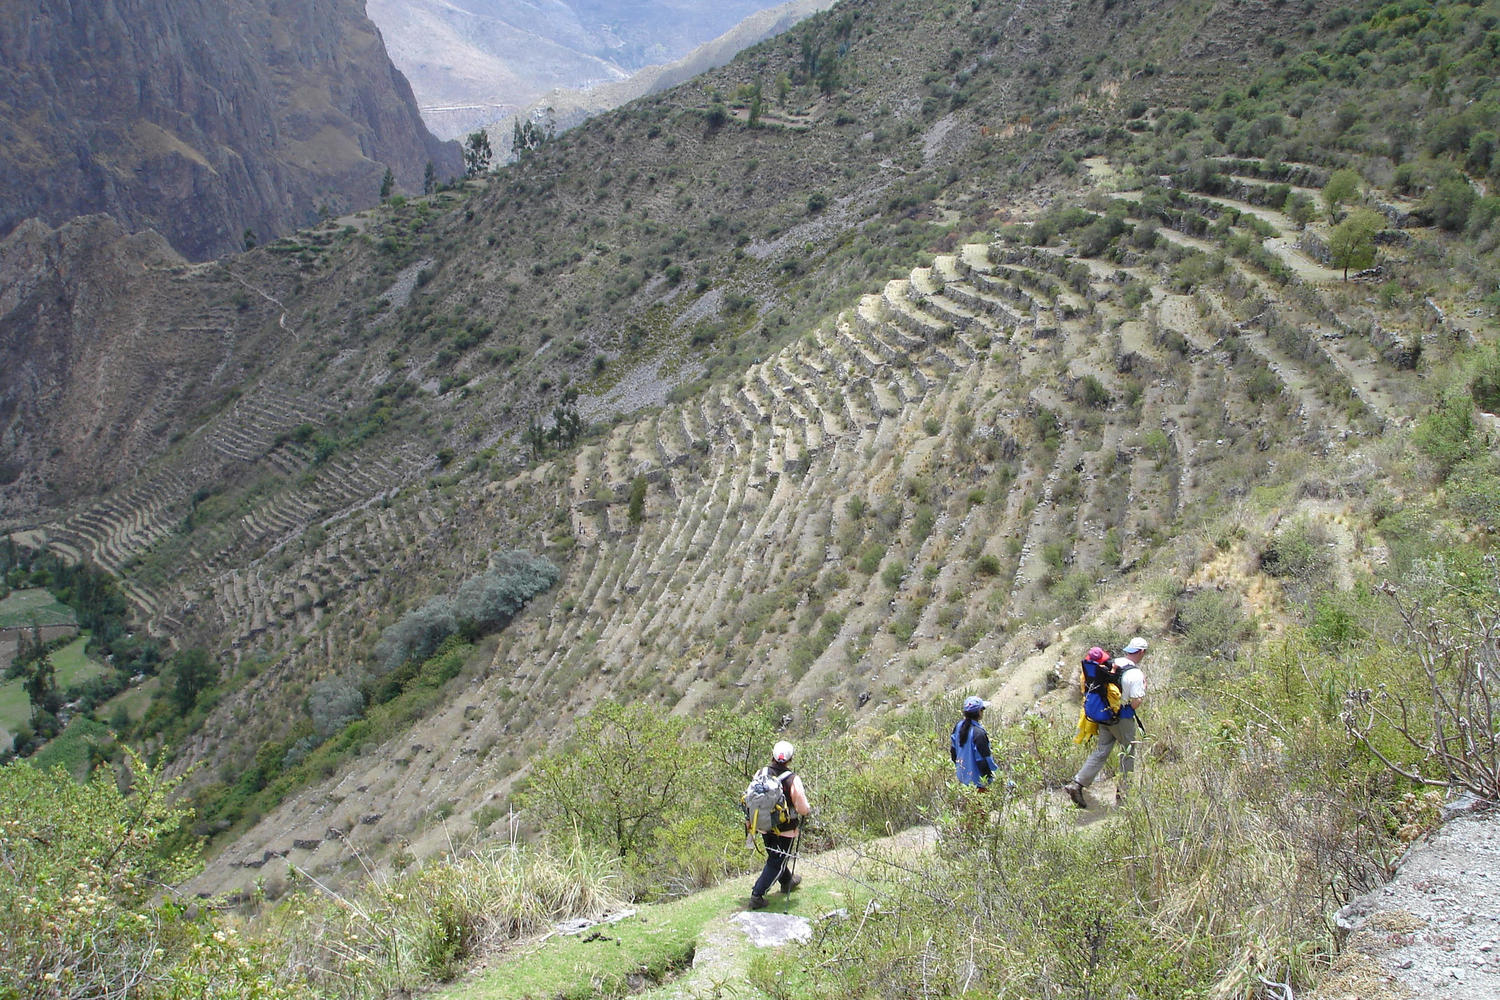 Trekking through Inca terraces high above the Sacred Valley on the Lares Trail